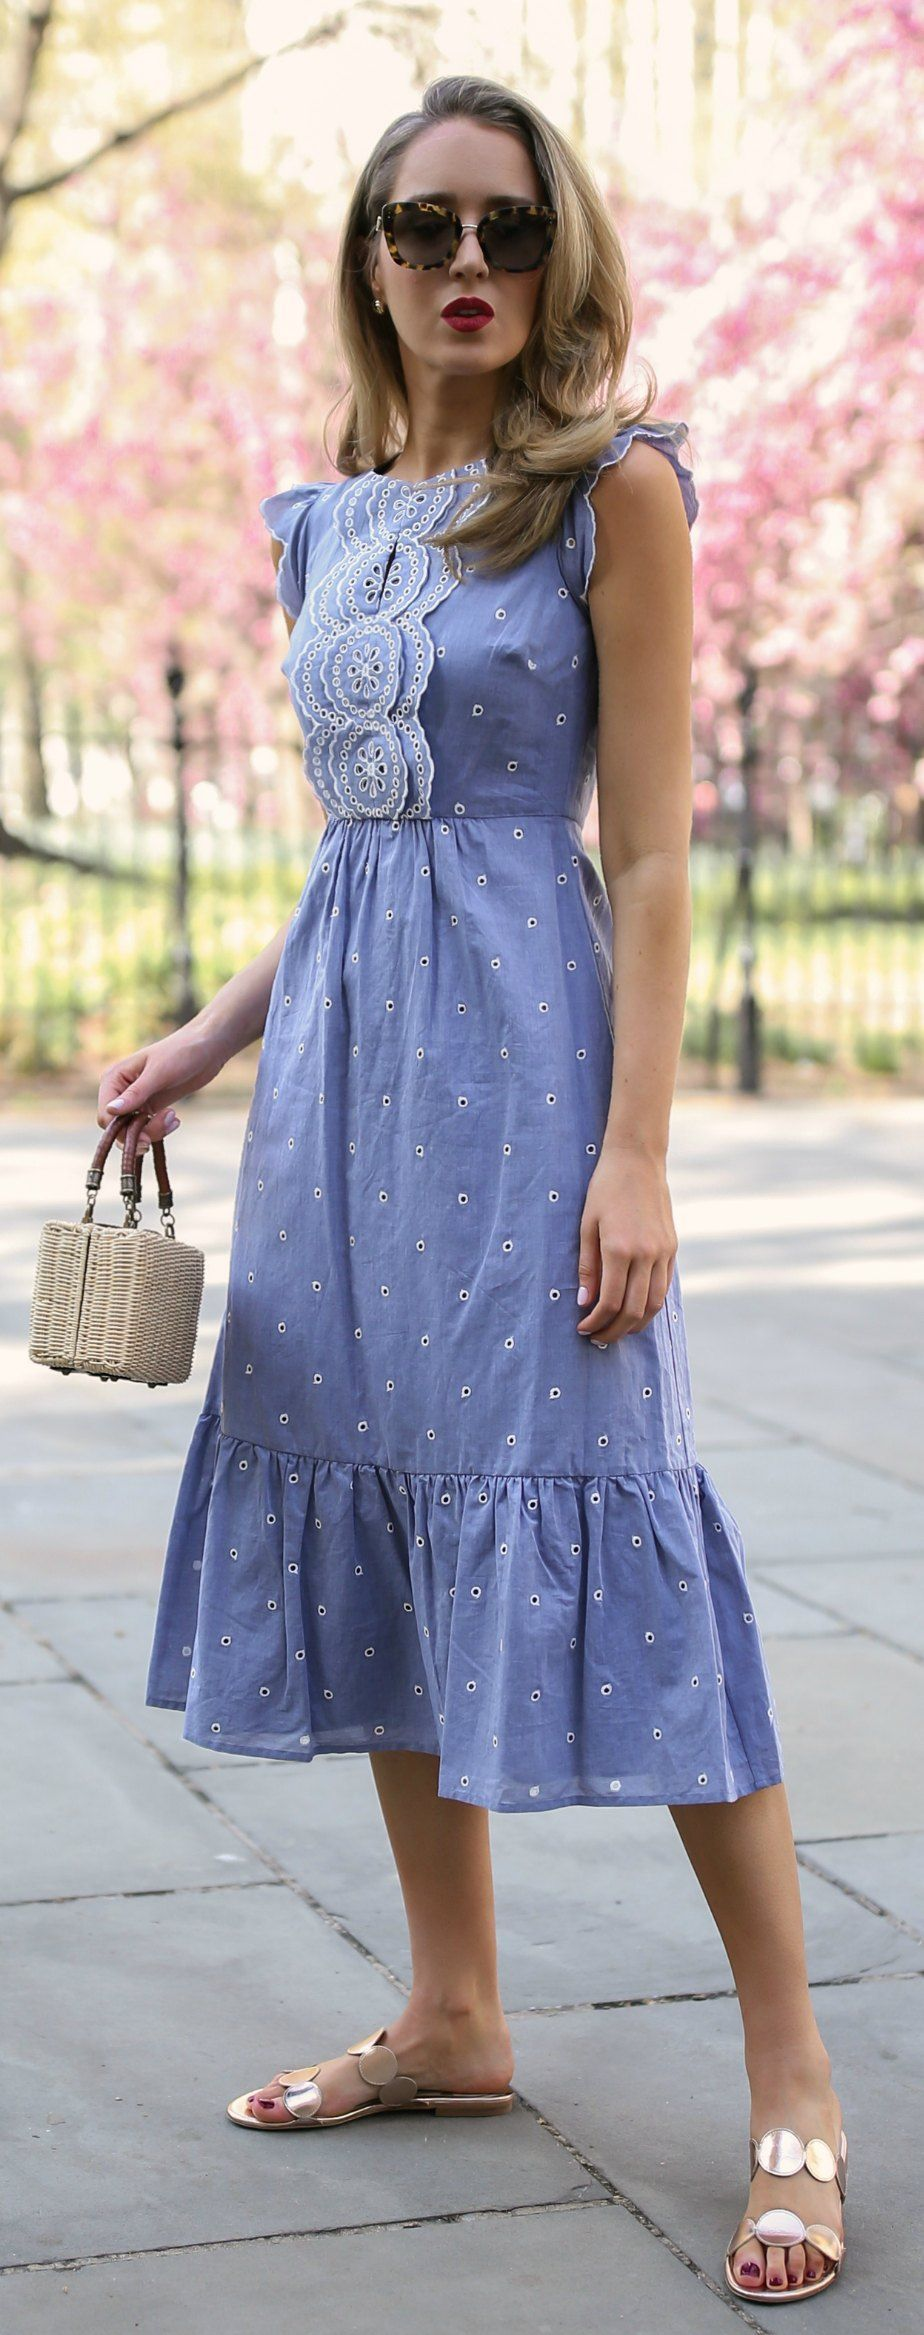 30 Dresses In Days Garden Party Light Blue Contrast Broderie Anglaise Embroidery Midi Dress Wicker Box Bag Metallic Dot Slides